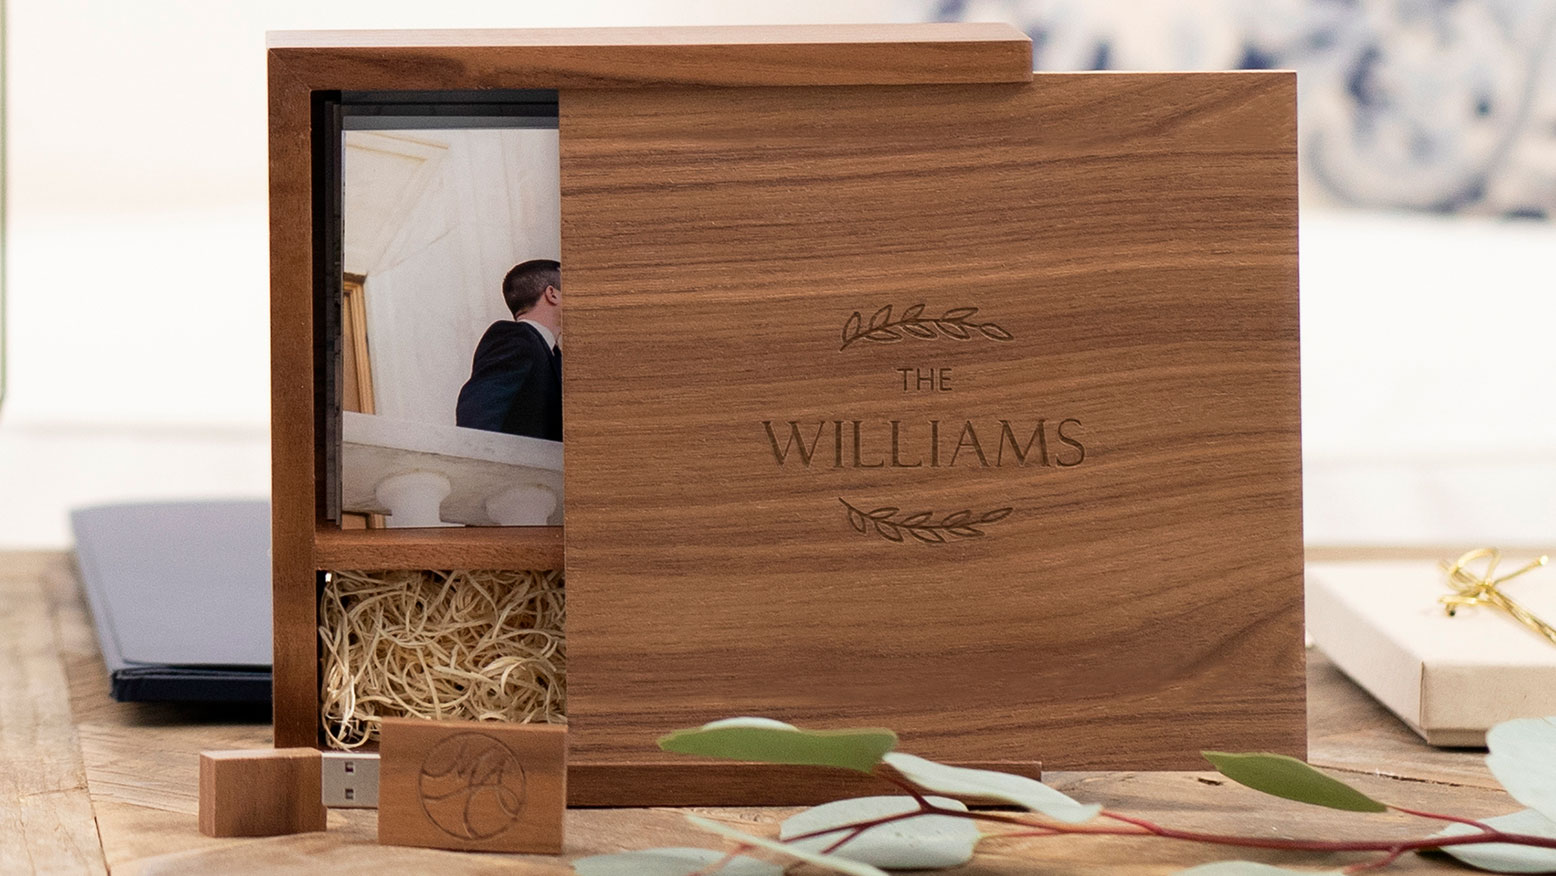 Promote your Brand with Stylish & Affordable Photo Packaging by Tyndell Photographic